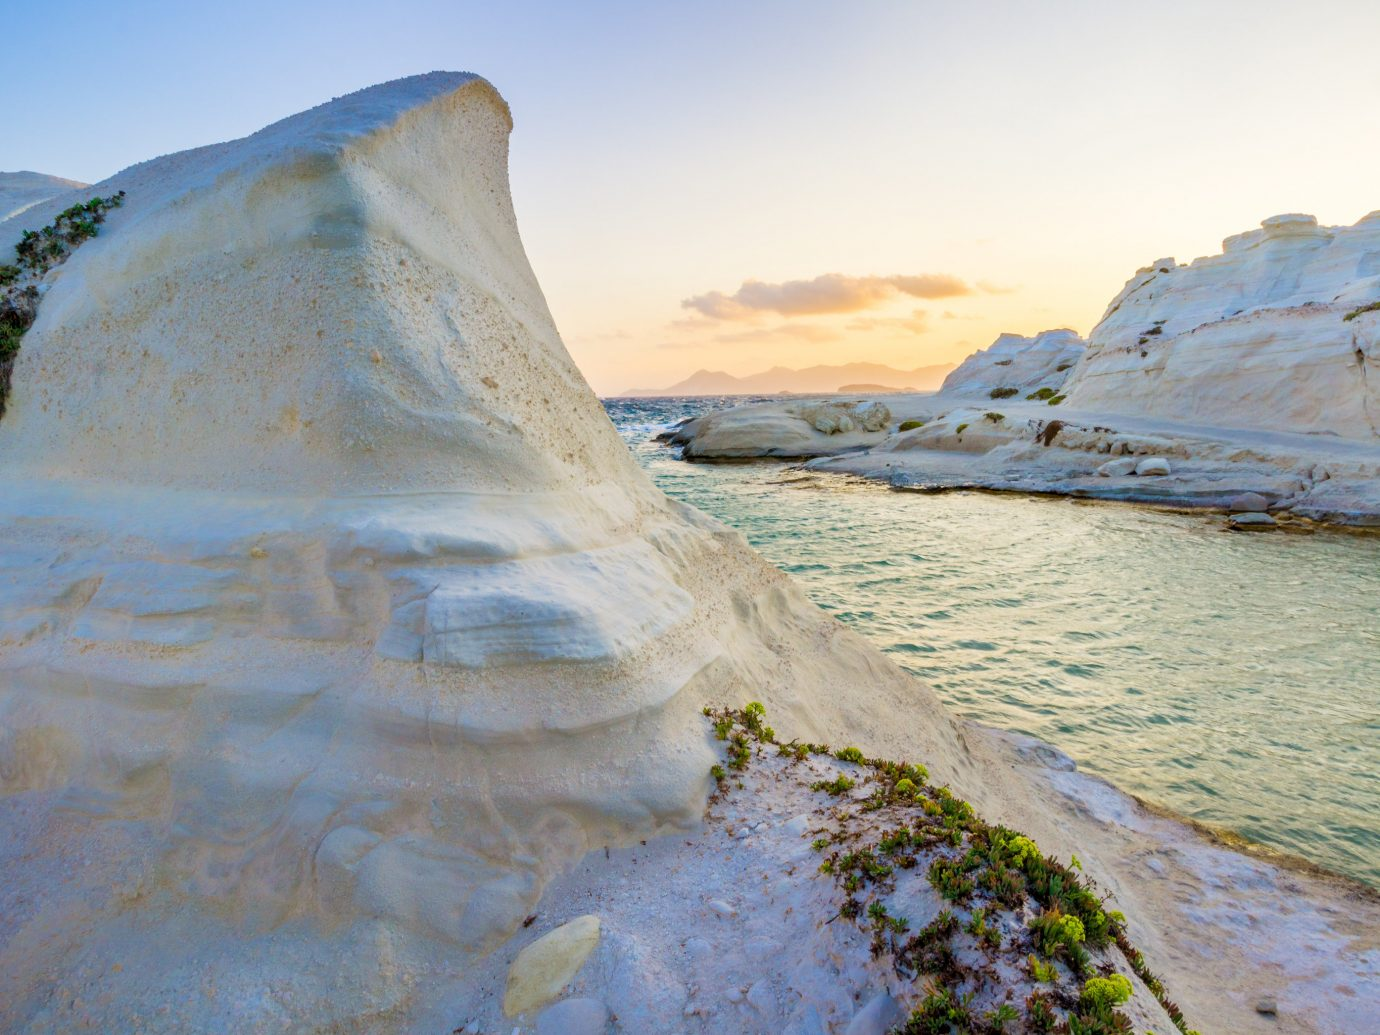 Trip Ideas outdoor sky Nature mountain shore landform Coast geographical feature Sea natural environment cliff water Ocean rock wave badlands wind wave terrain sand landscape Beach geology cape ice material hillside